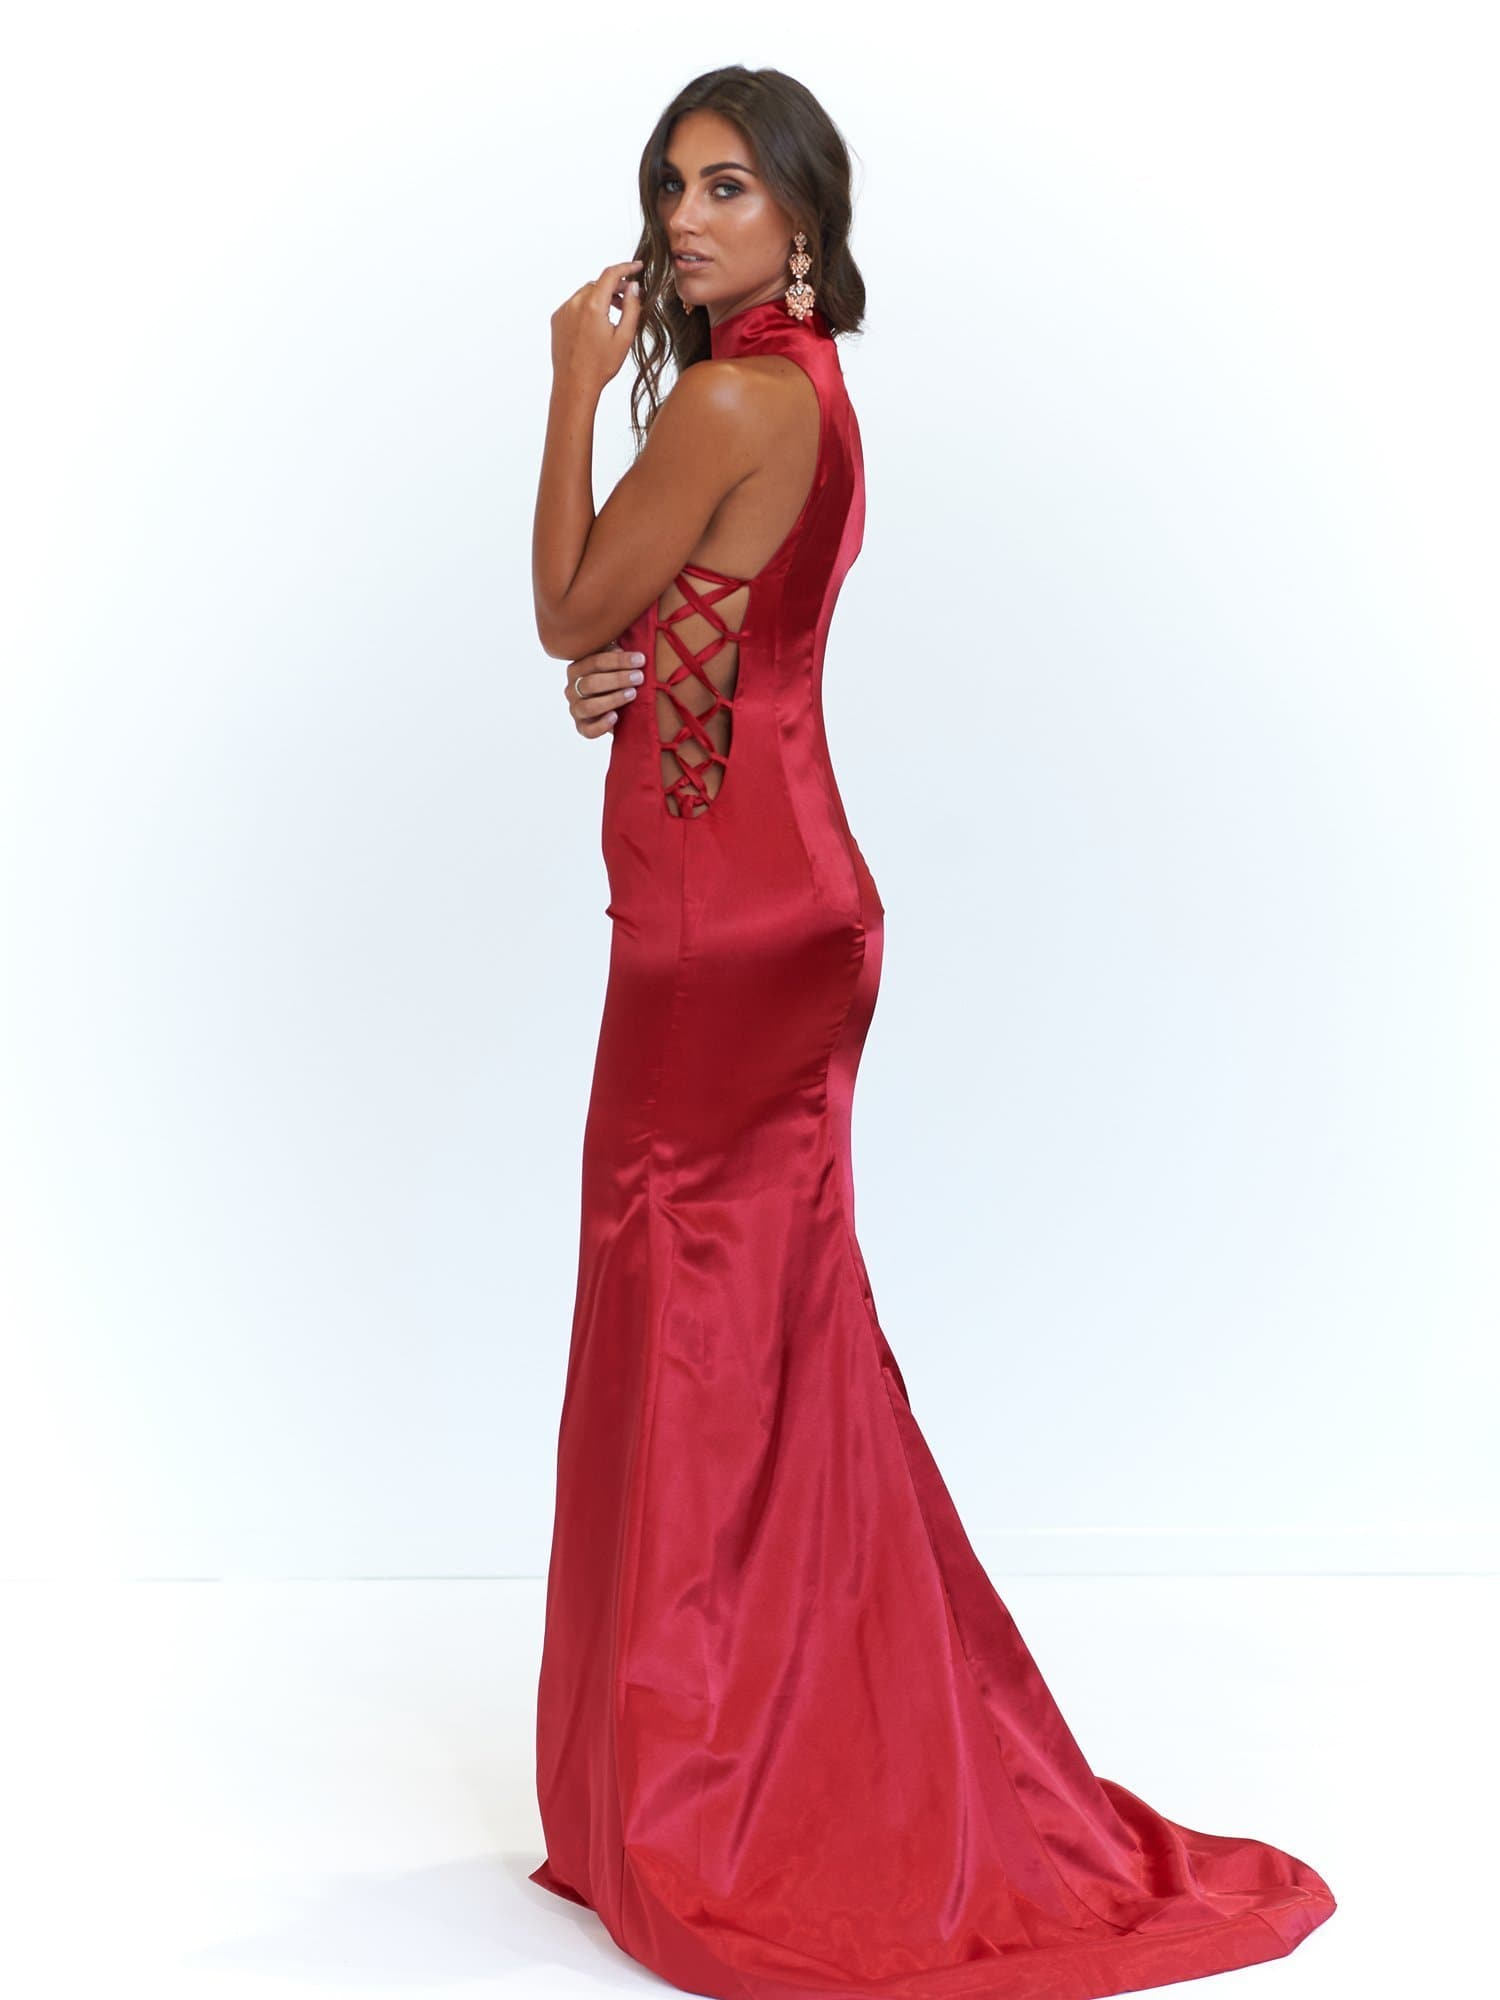 A&N Aida - Deep Red Satin High Neck Dress with Criss Cross Side Detail